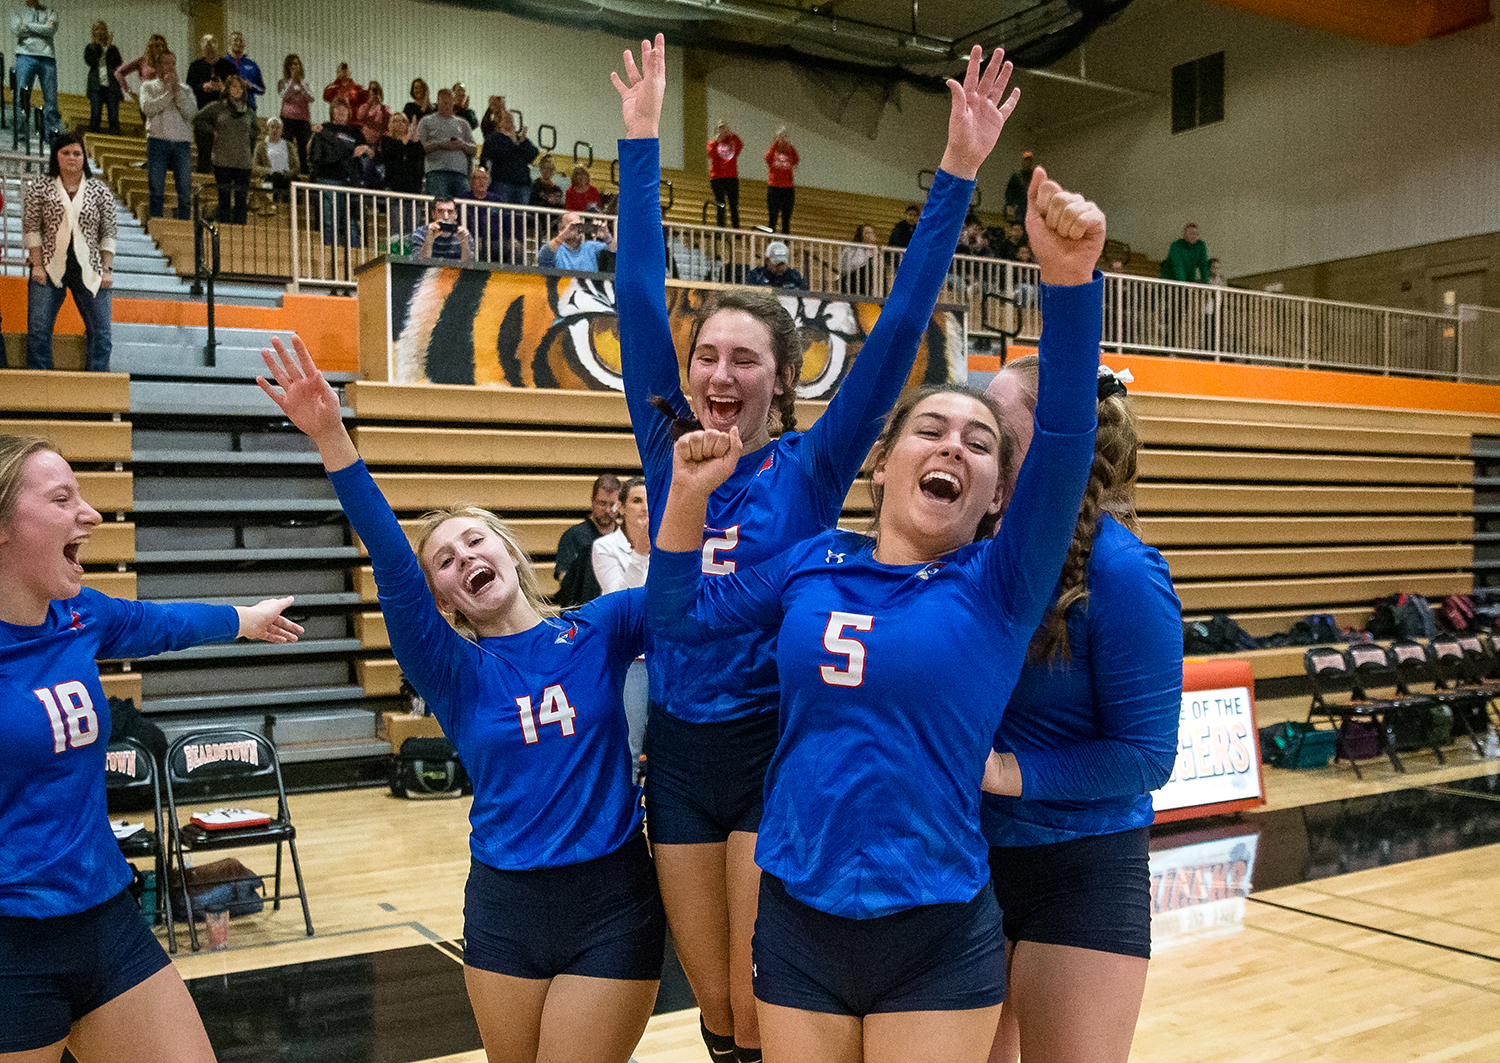 Pleasant Plains' Chloe Burt (14), Maddie Reiser (12) and Emma Grieser (5) join in with the Cardinals as they celebrate defeating Eureka in the Class 2A Beardstown Supersectional at Beardstown High School, Friday, Nov. 2, 2018, in Beardstown, Ill. [Justin L. Fowler/The State Journal-Register]